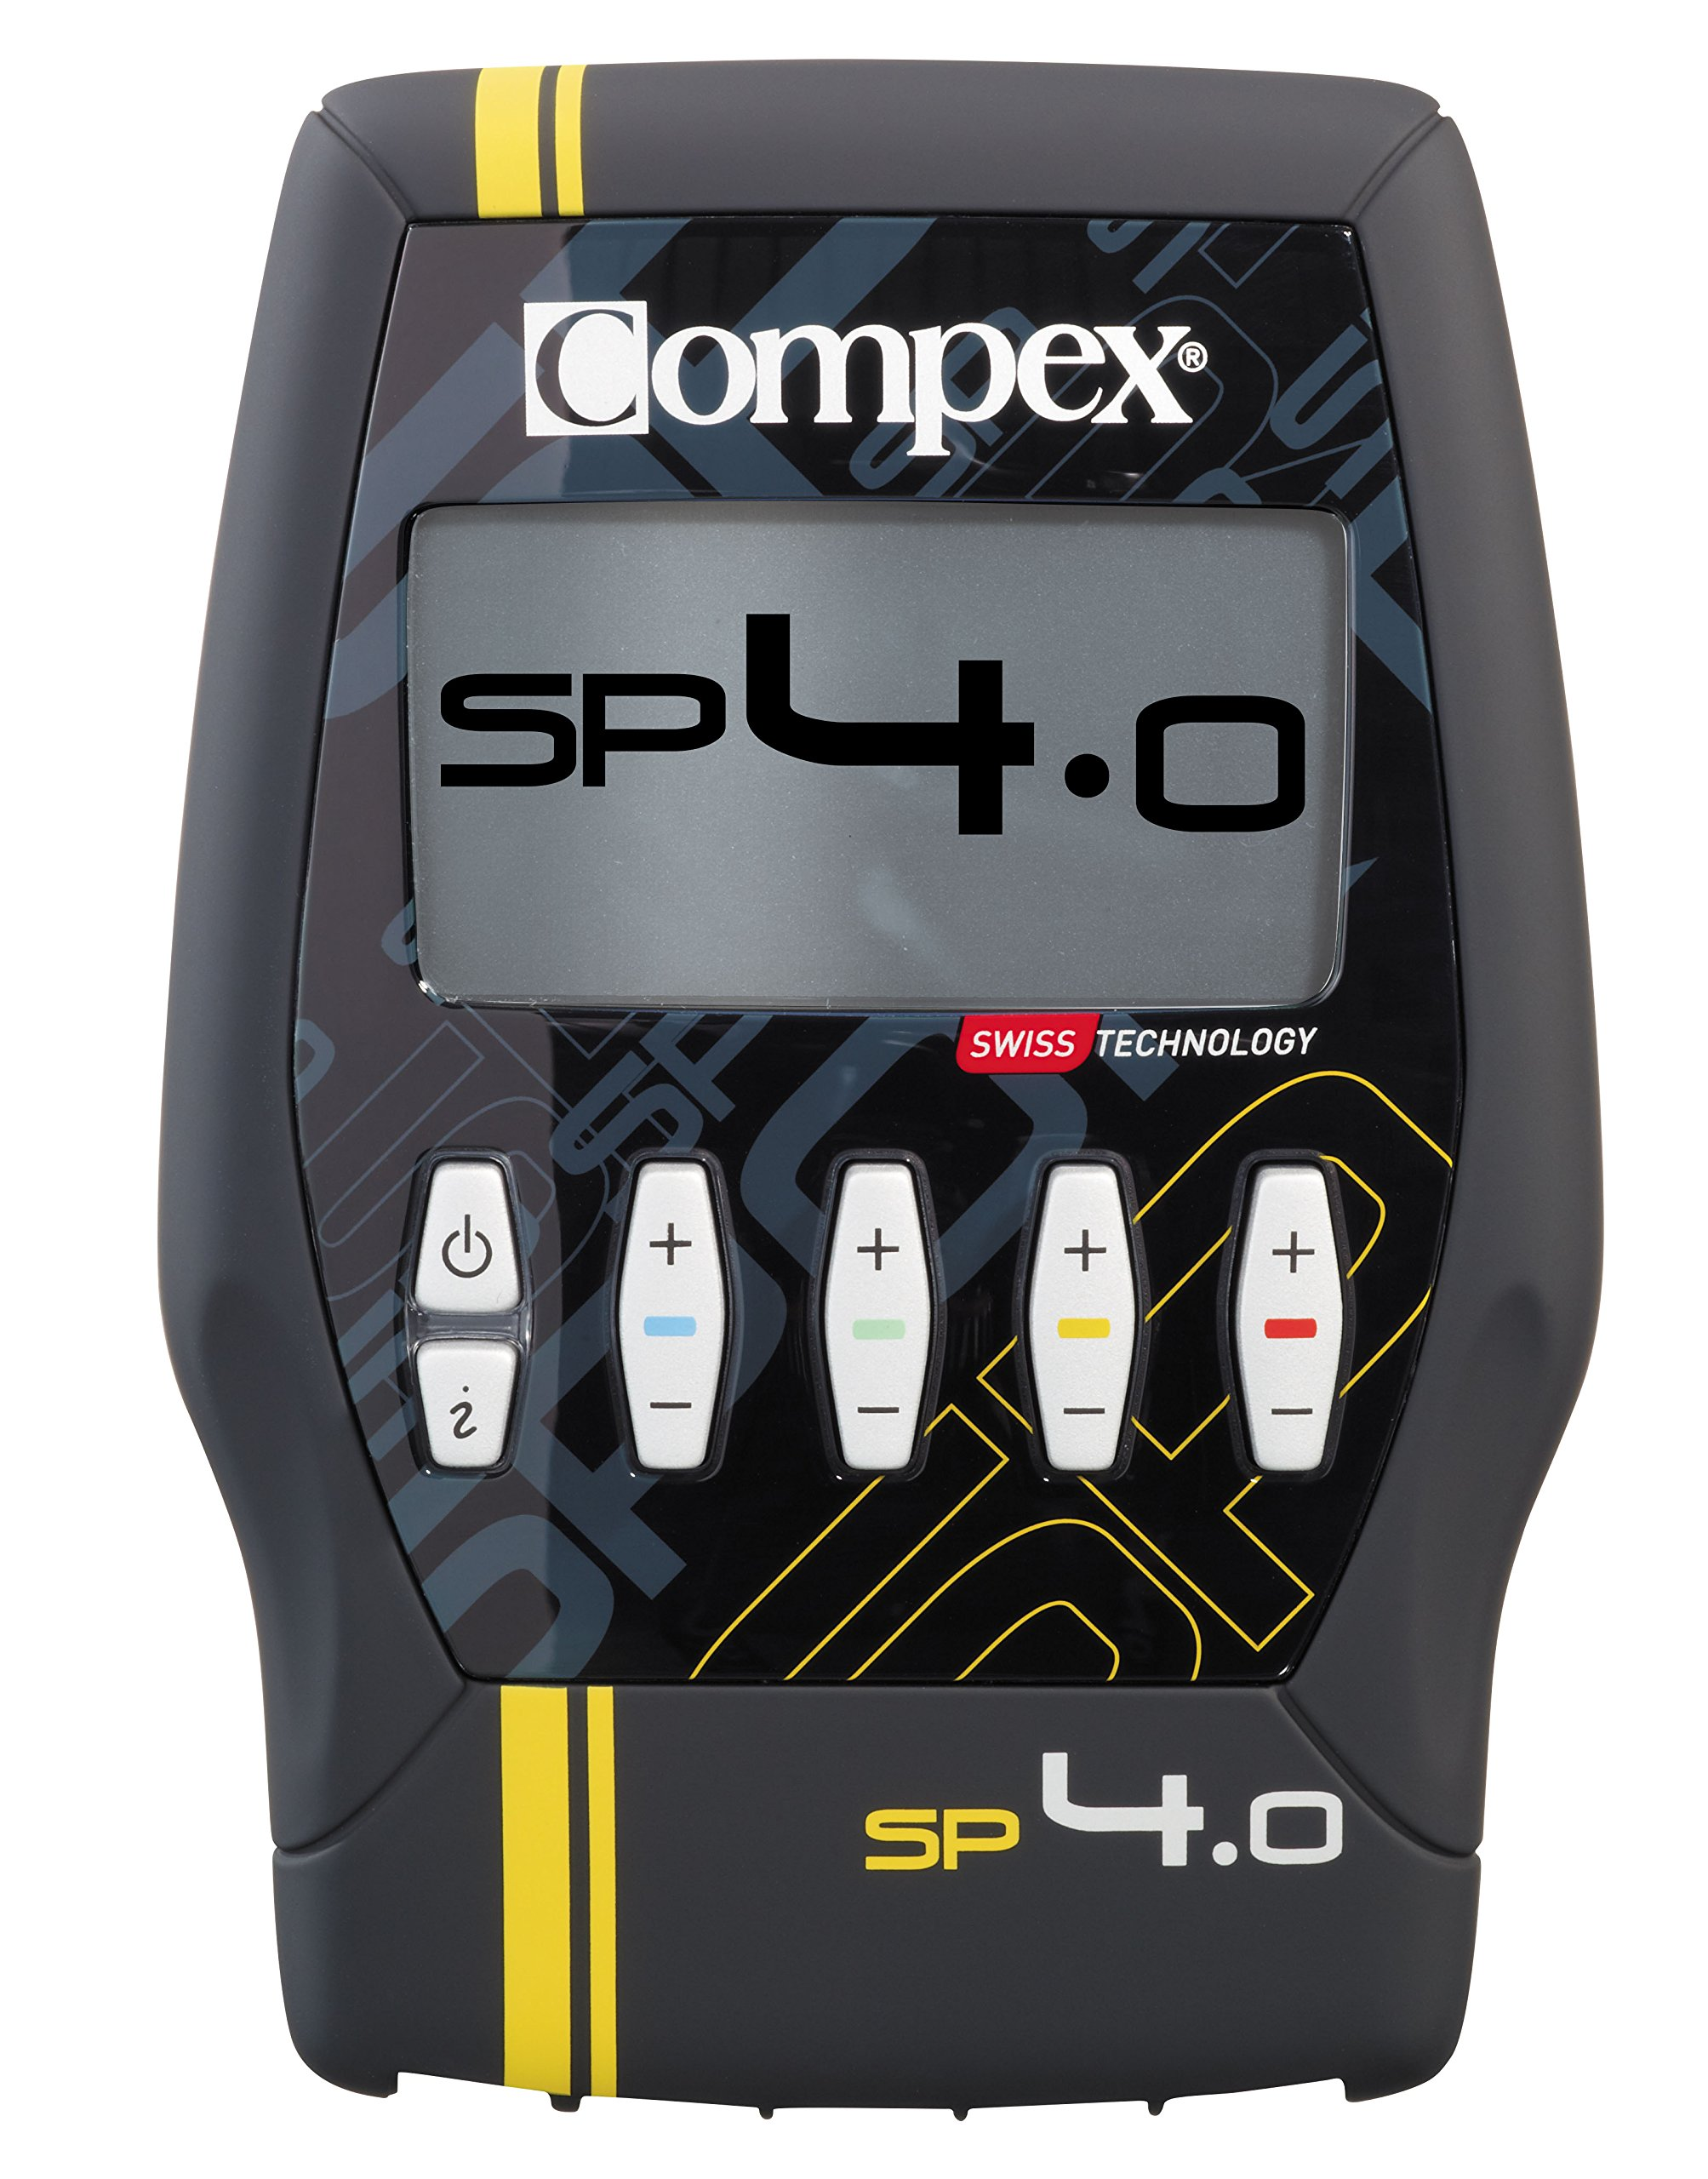 Compex Muskelstimulation SP 4.0 im Test